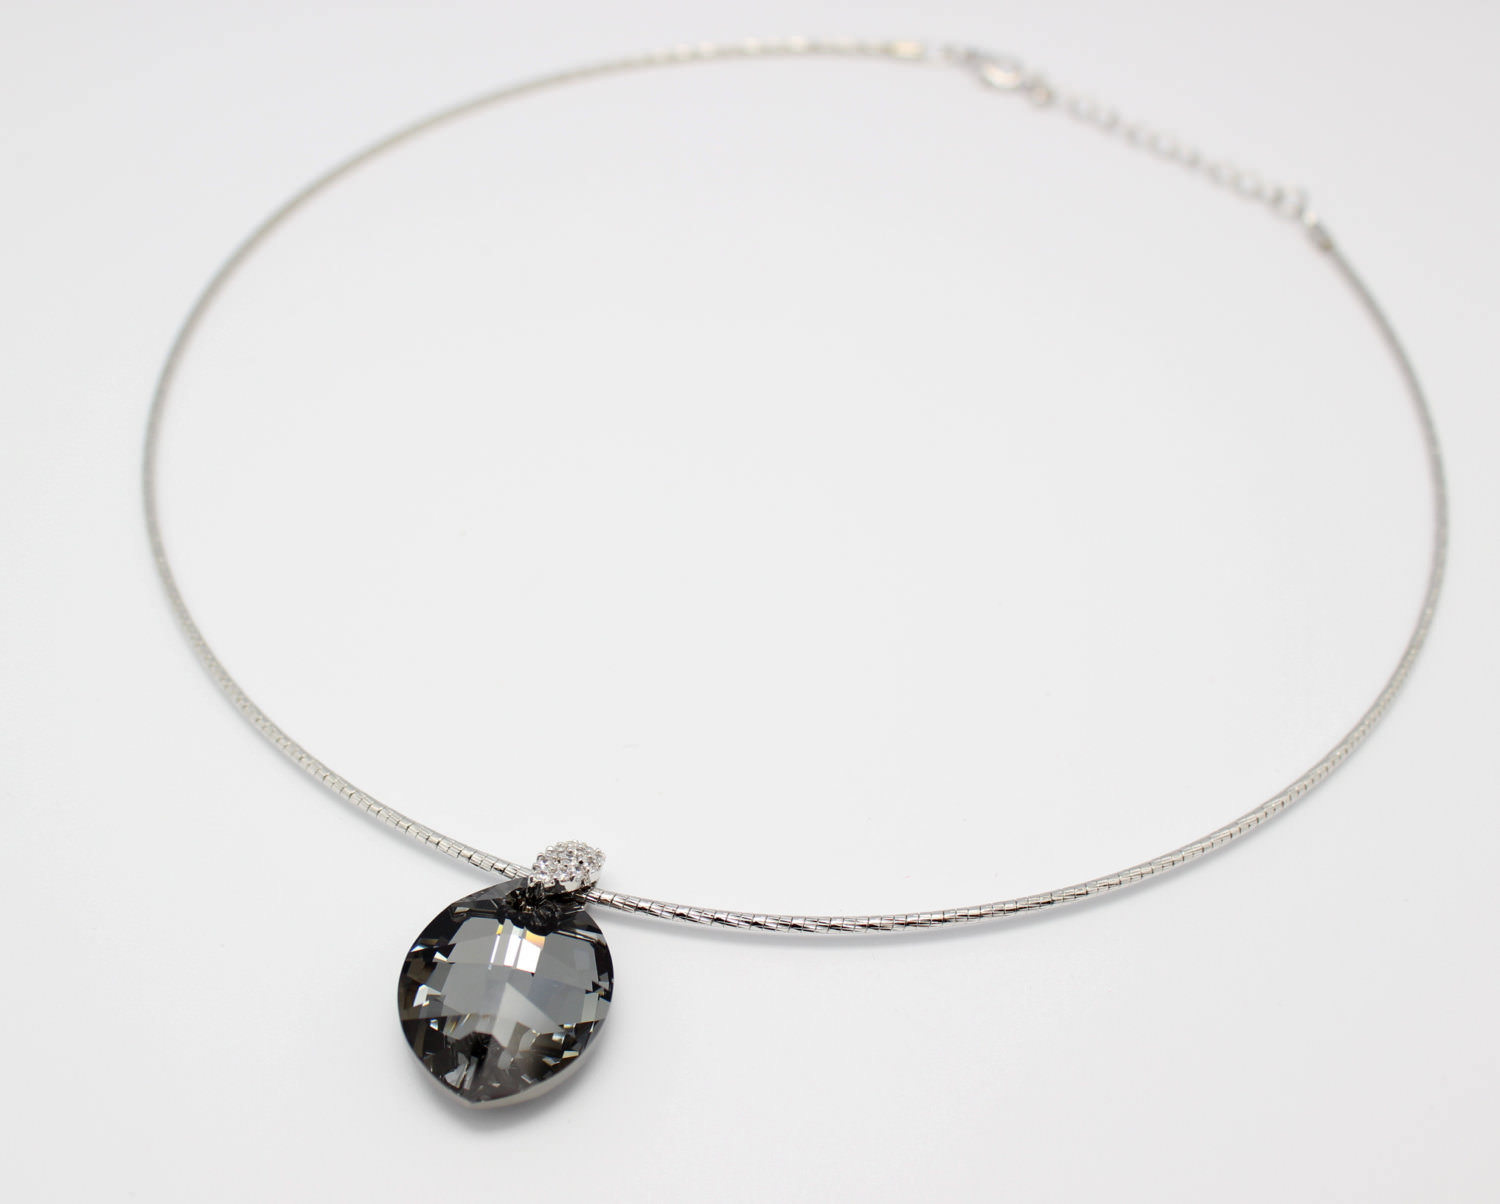 Charming Black Omega Chain Prom Necklace